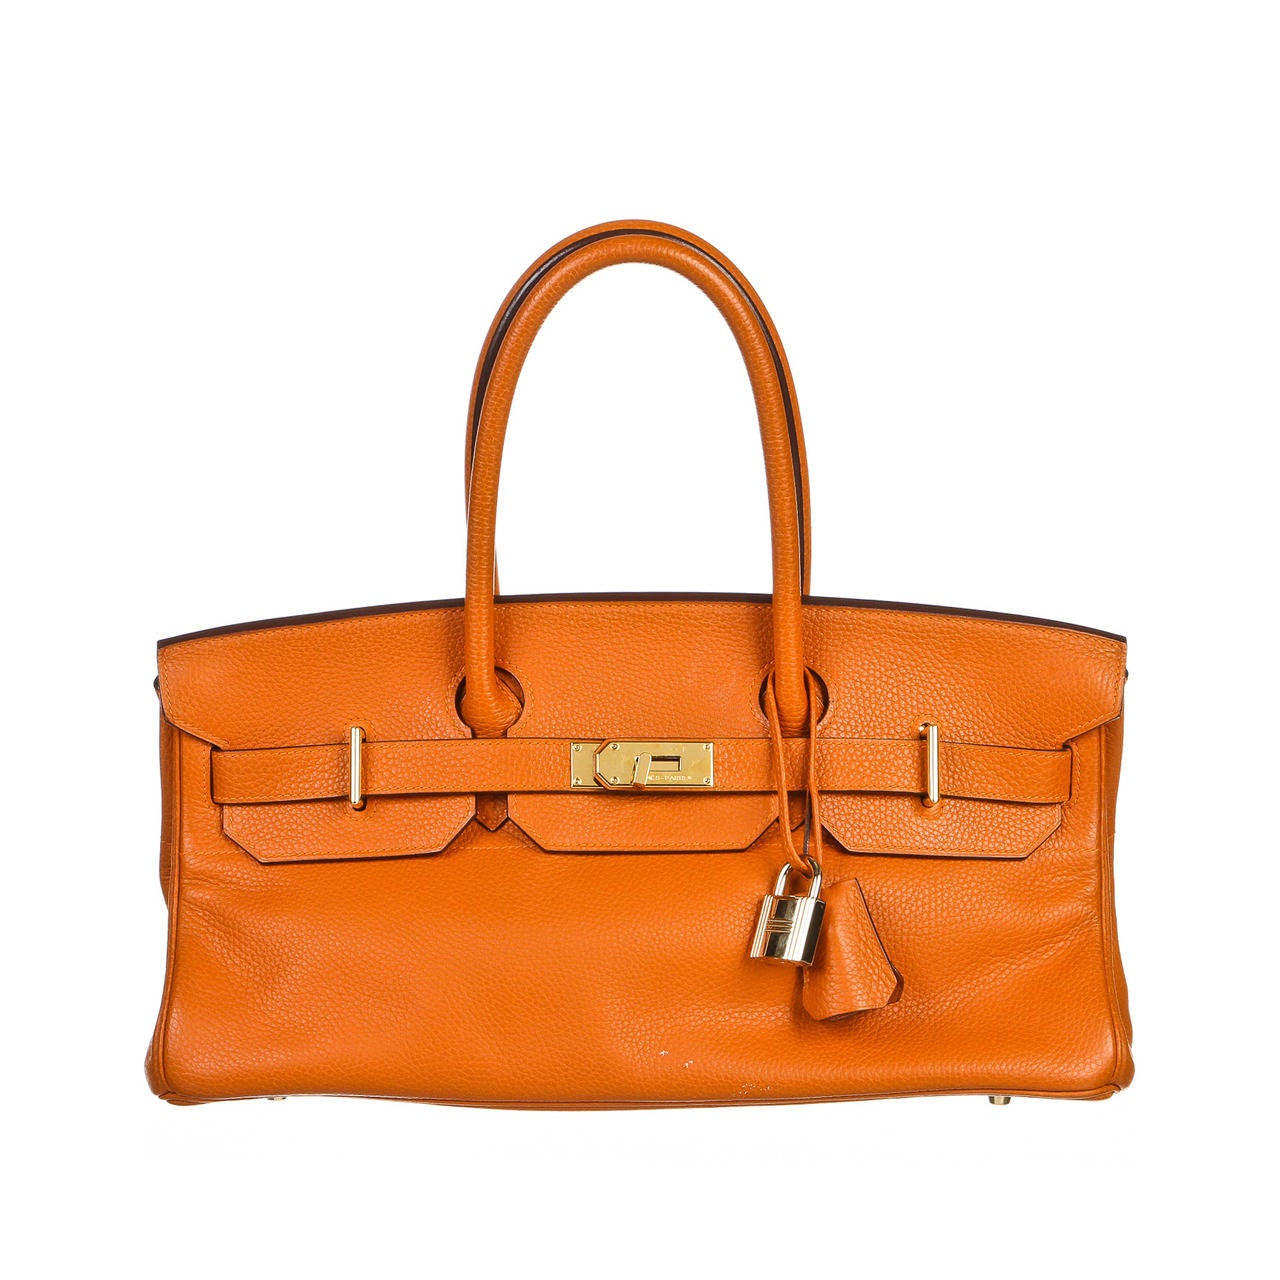 Hermes Orange JPG 42cm Birkin Clemence Leather Handbag at 1stdibs